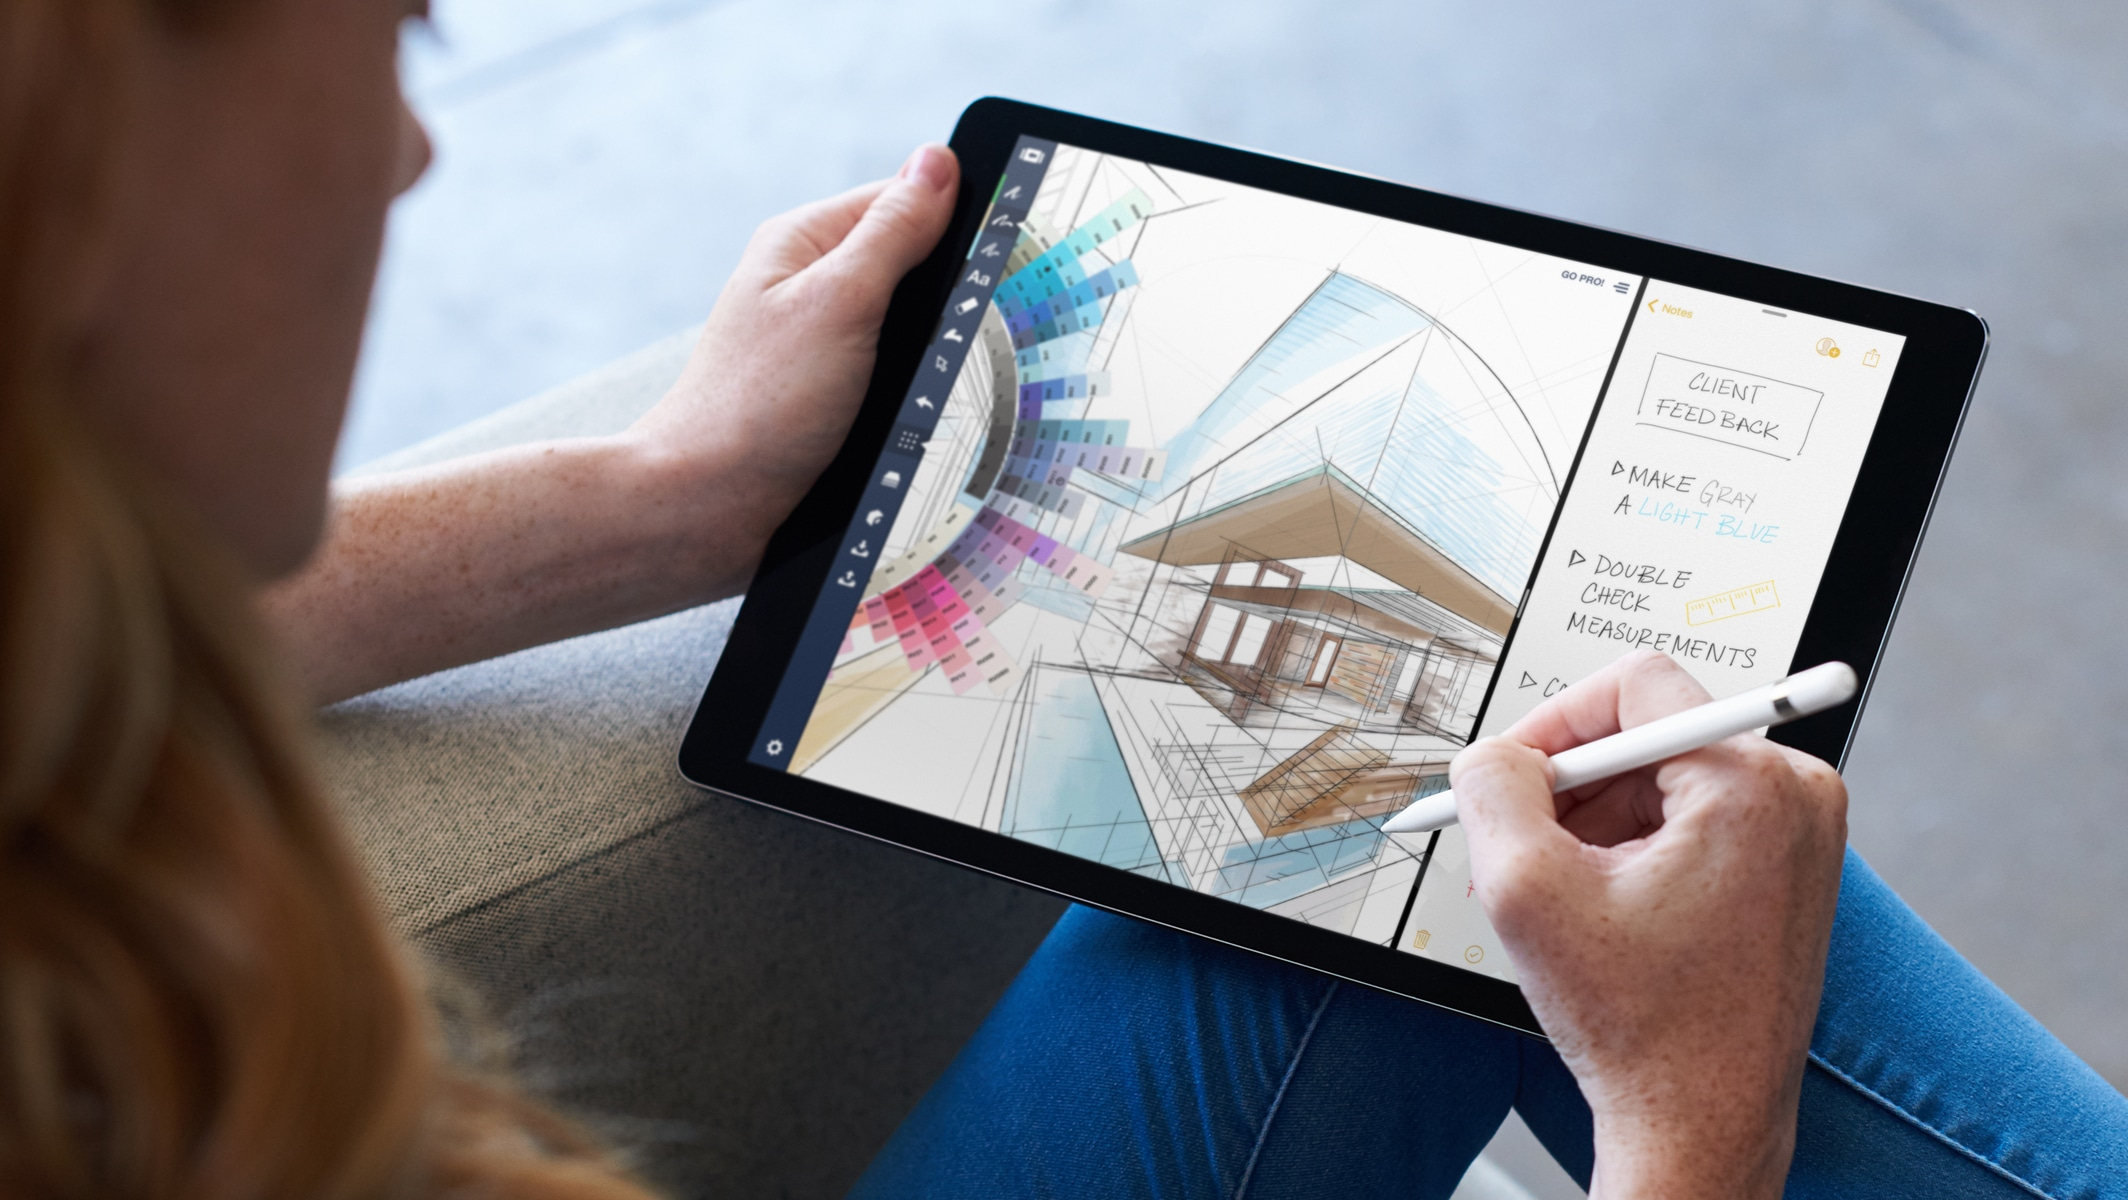 Apple Pencil no iPad Pro com iOS 11